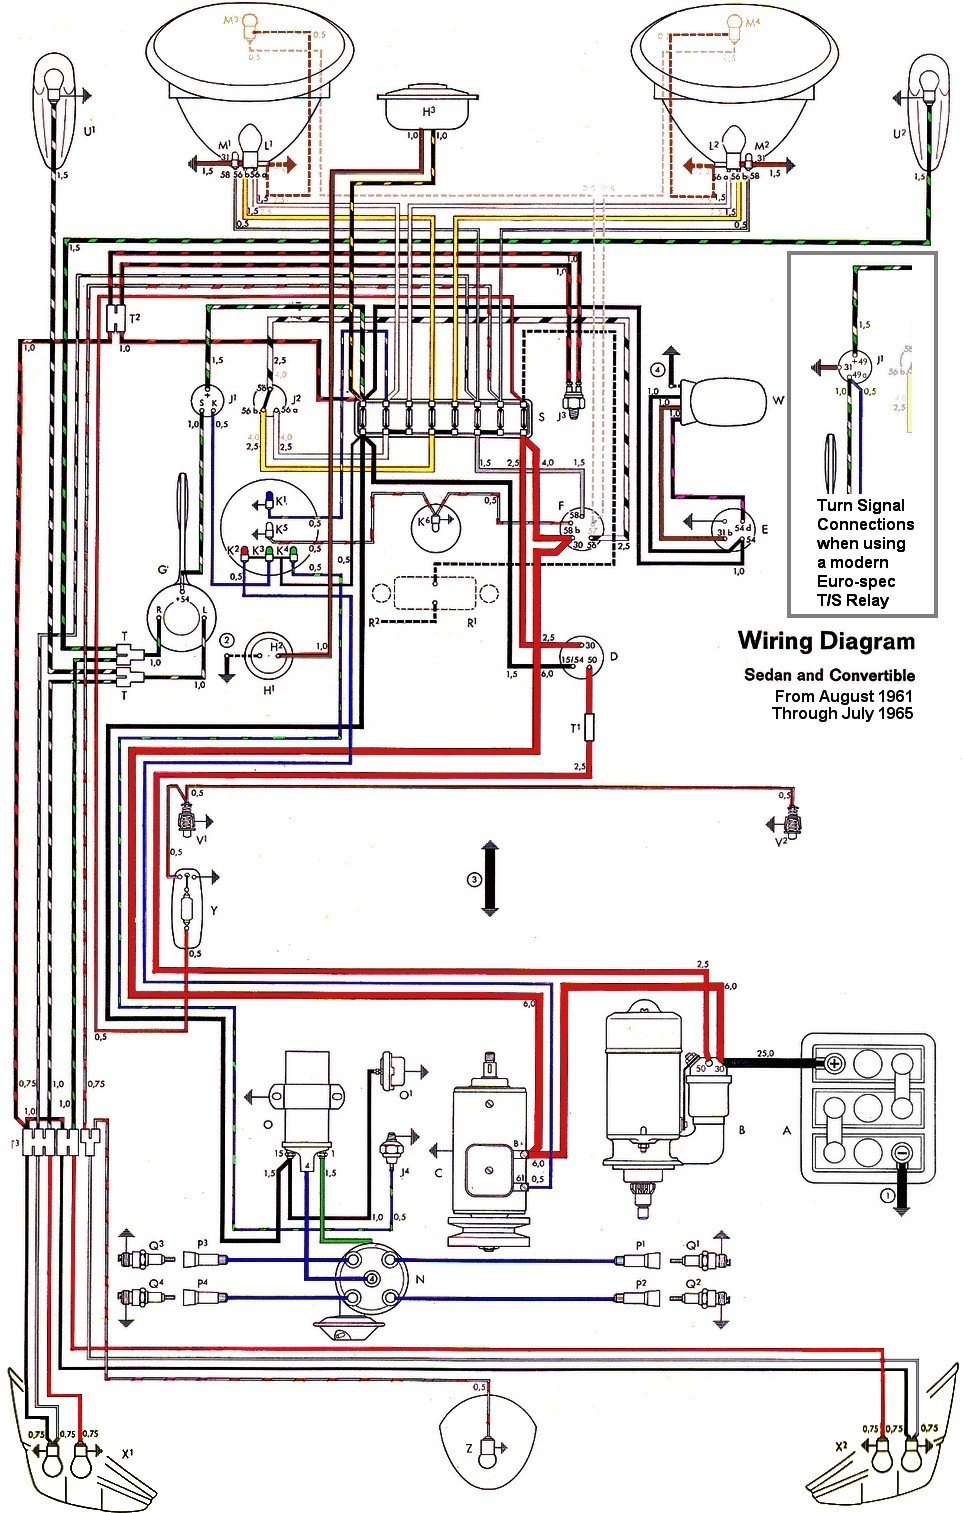 bug_62 65withinset vw wiring harness diagram cj7 wiring harness diagram \u2022 wiring Wiring Harness Diagram at fashall.co